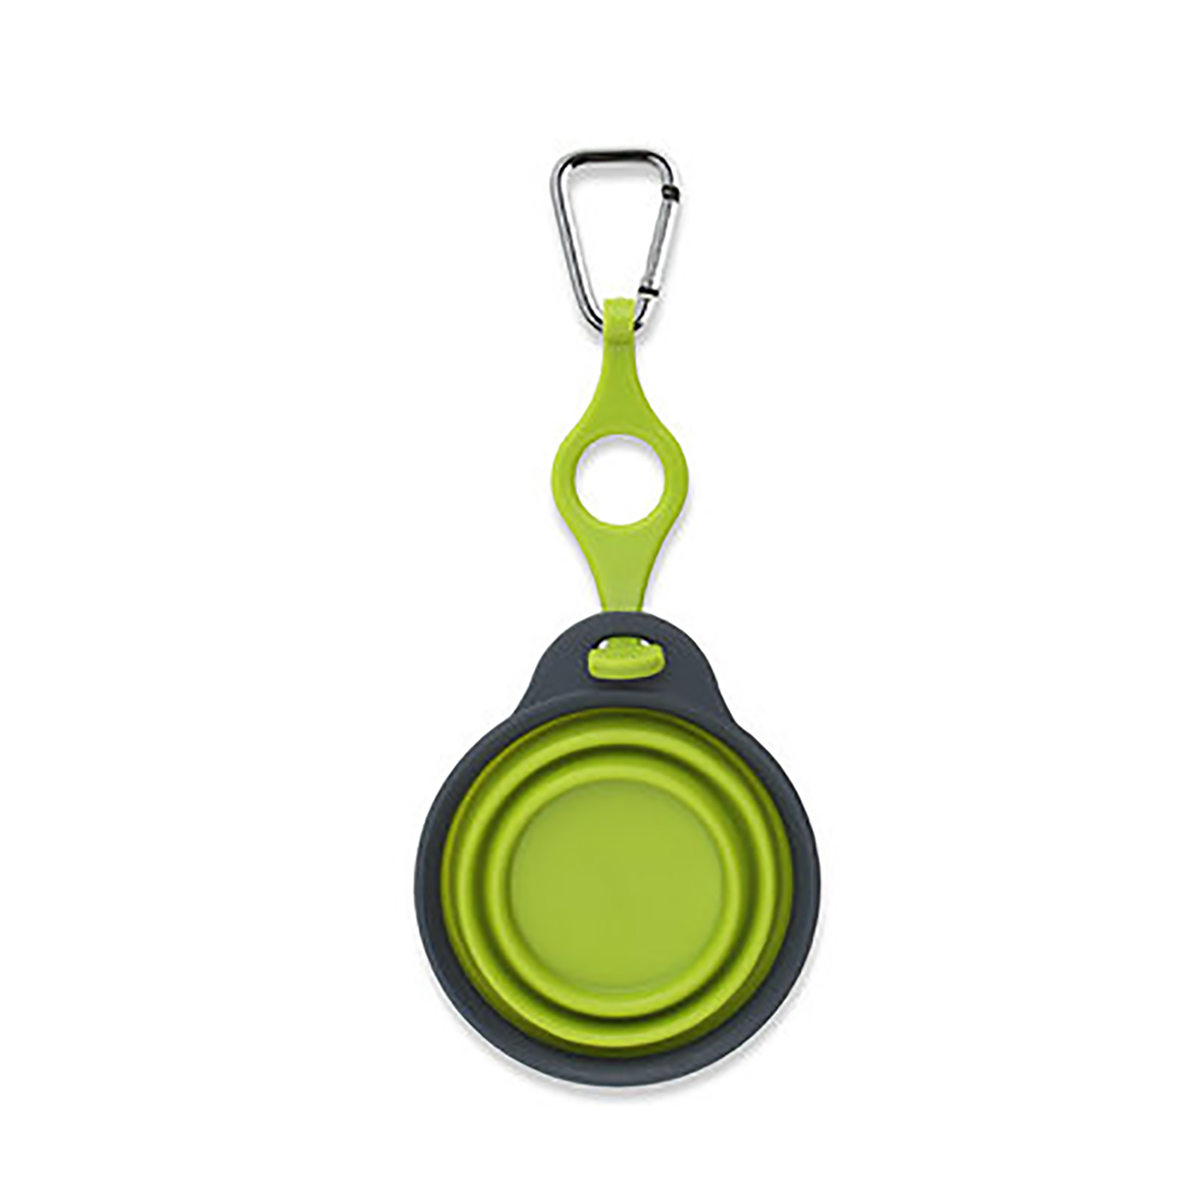 Collapsible Travel Cup with Bottle Holder and Carabiner - Green